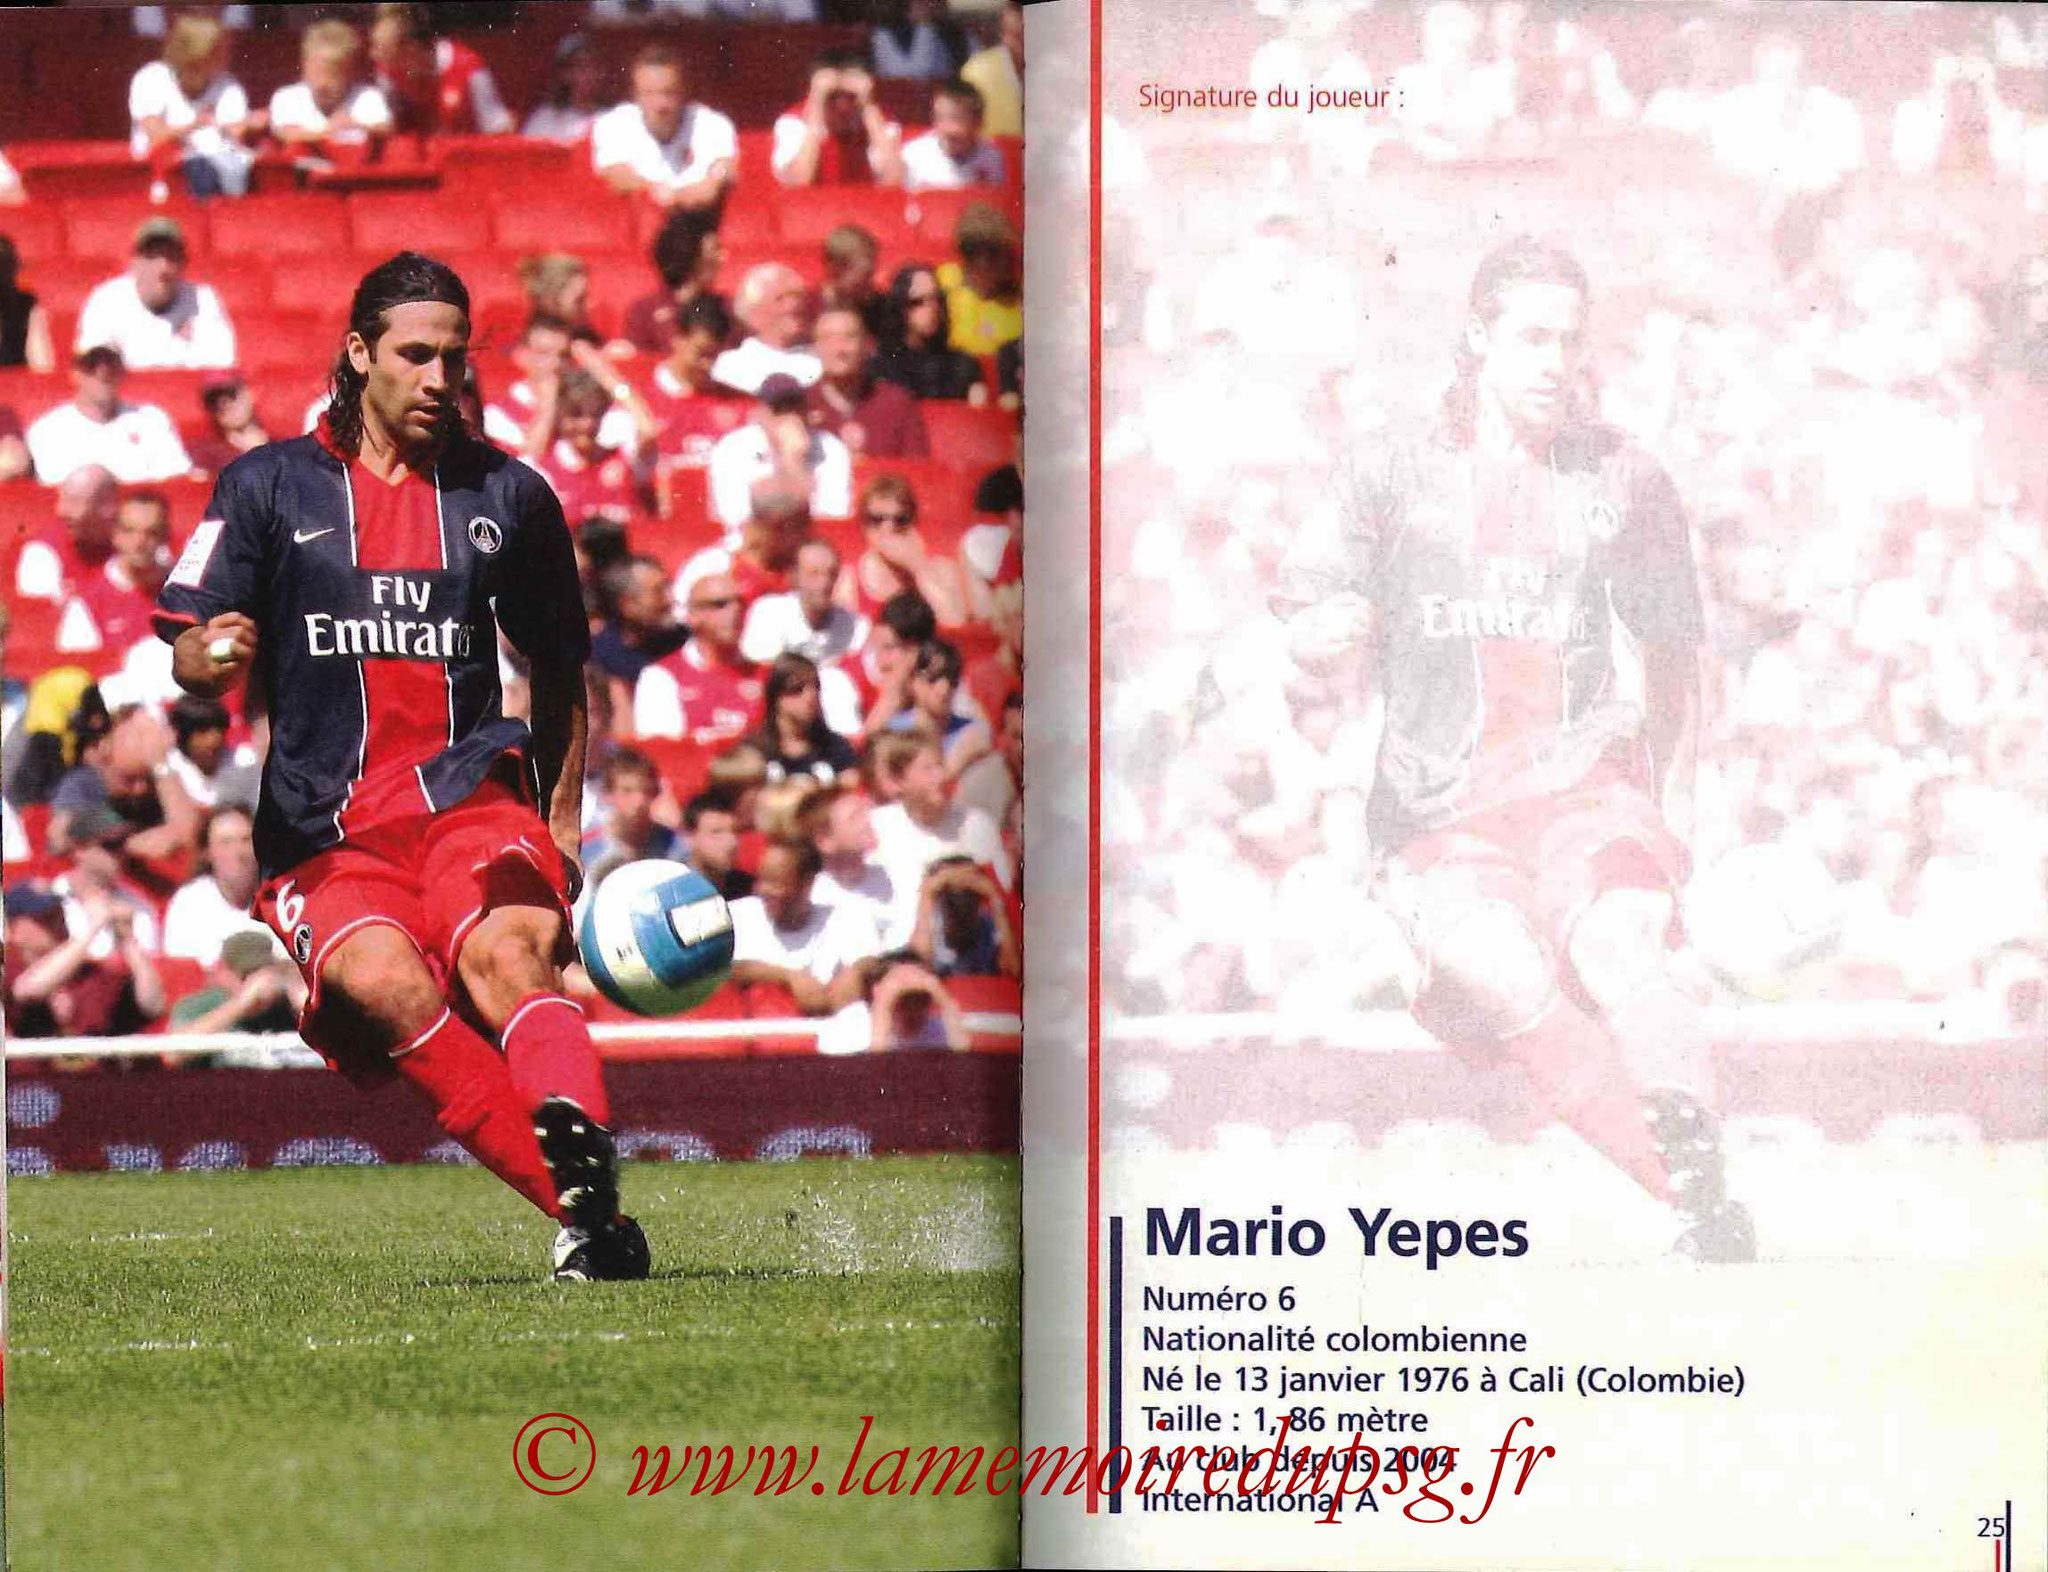 2007-08 - Guide de la Saison PSG - Pages 24 et 25 - Mario YEPES